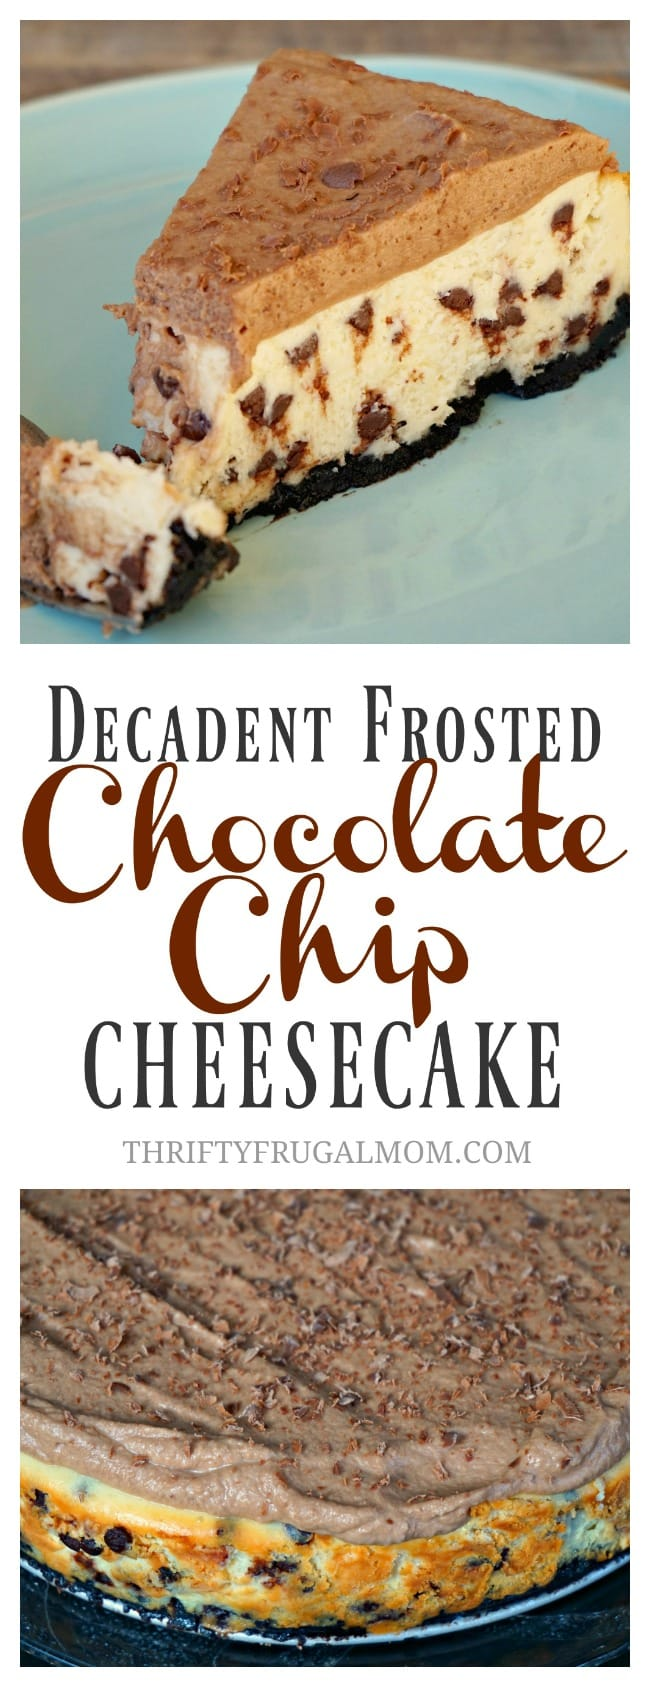 Decadent Frosted Chocolate Chip Cheesecake- the best chocolate chip dessert you'll ever make! So good!